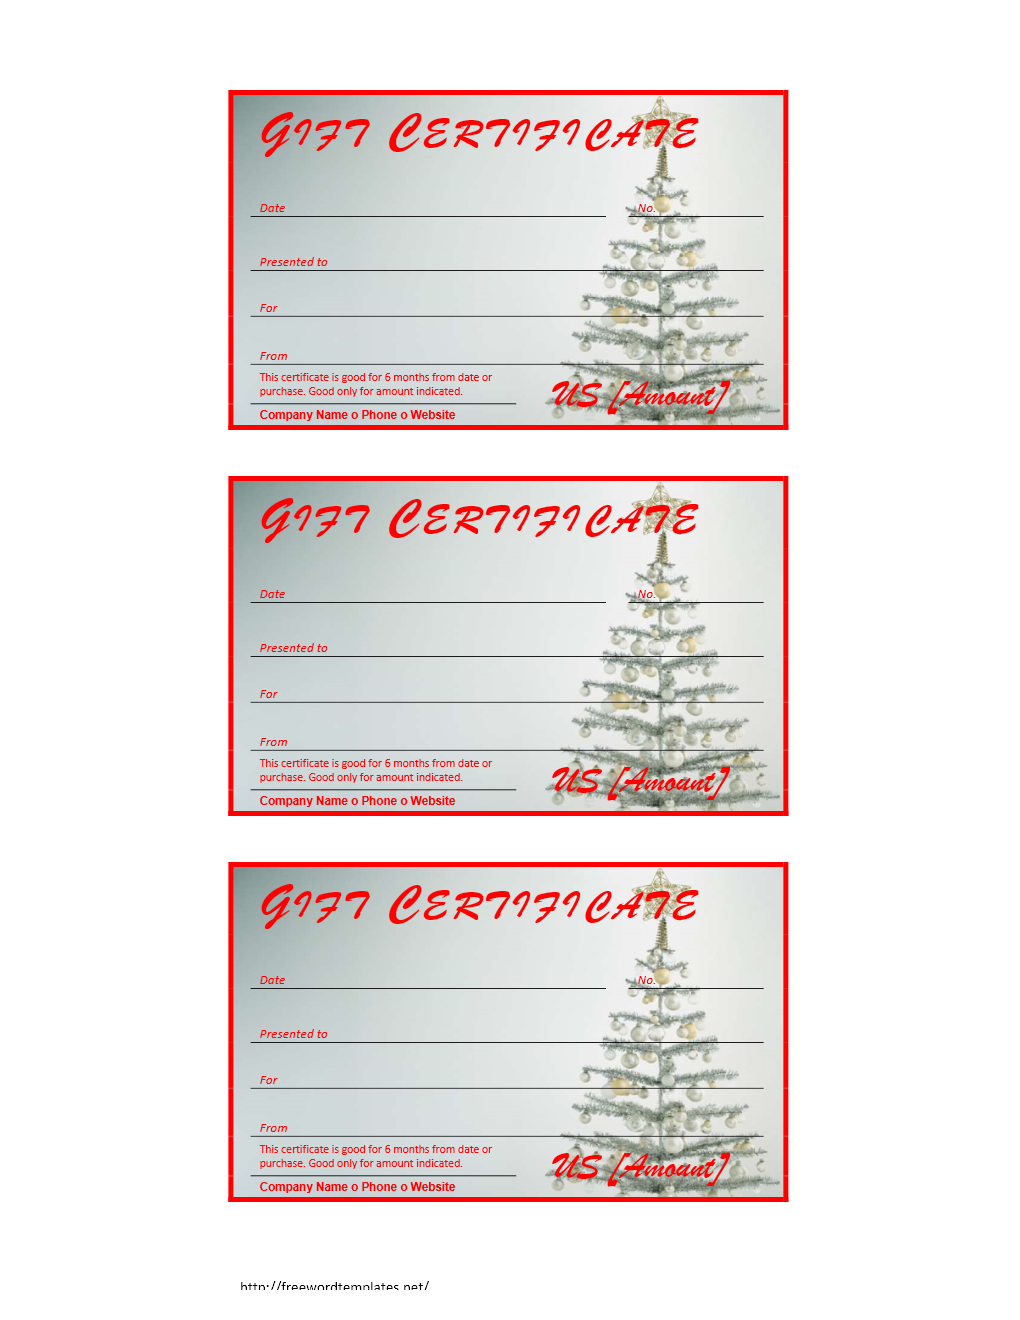 Free Gift Certificate Archives Freewordtemplates